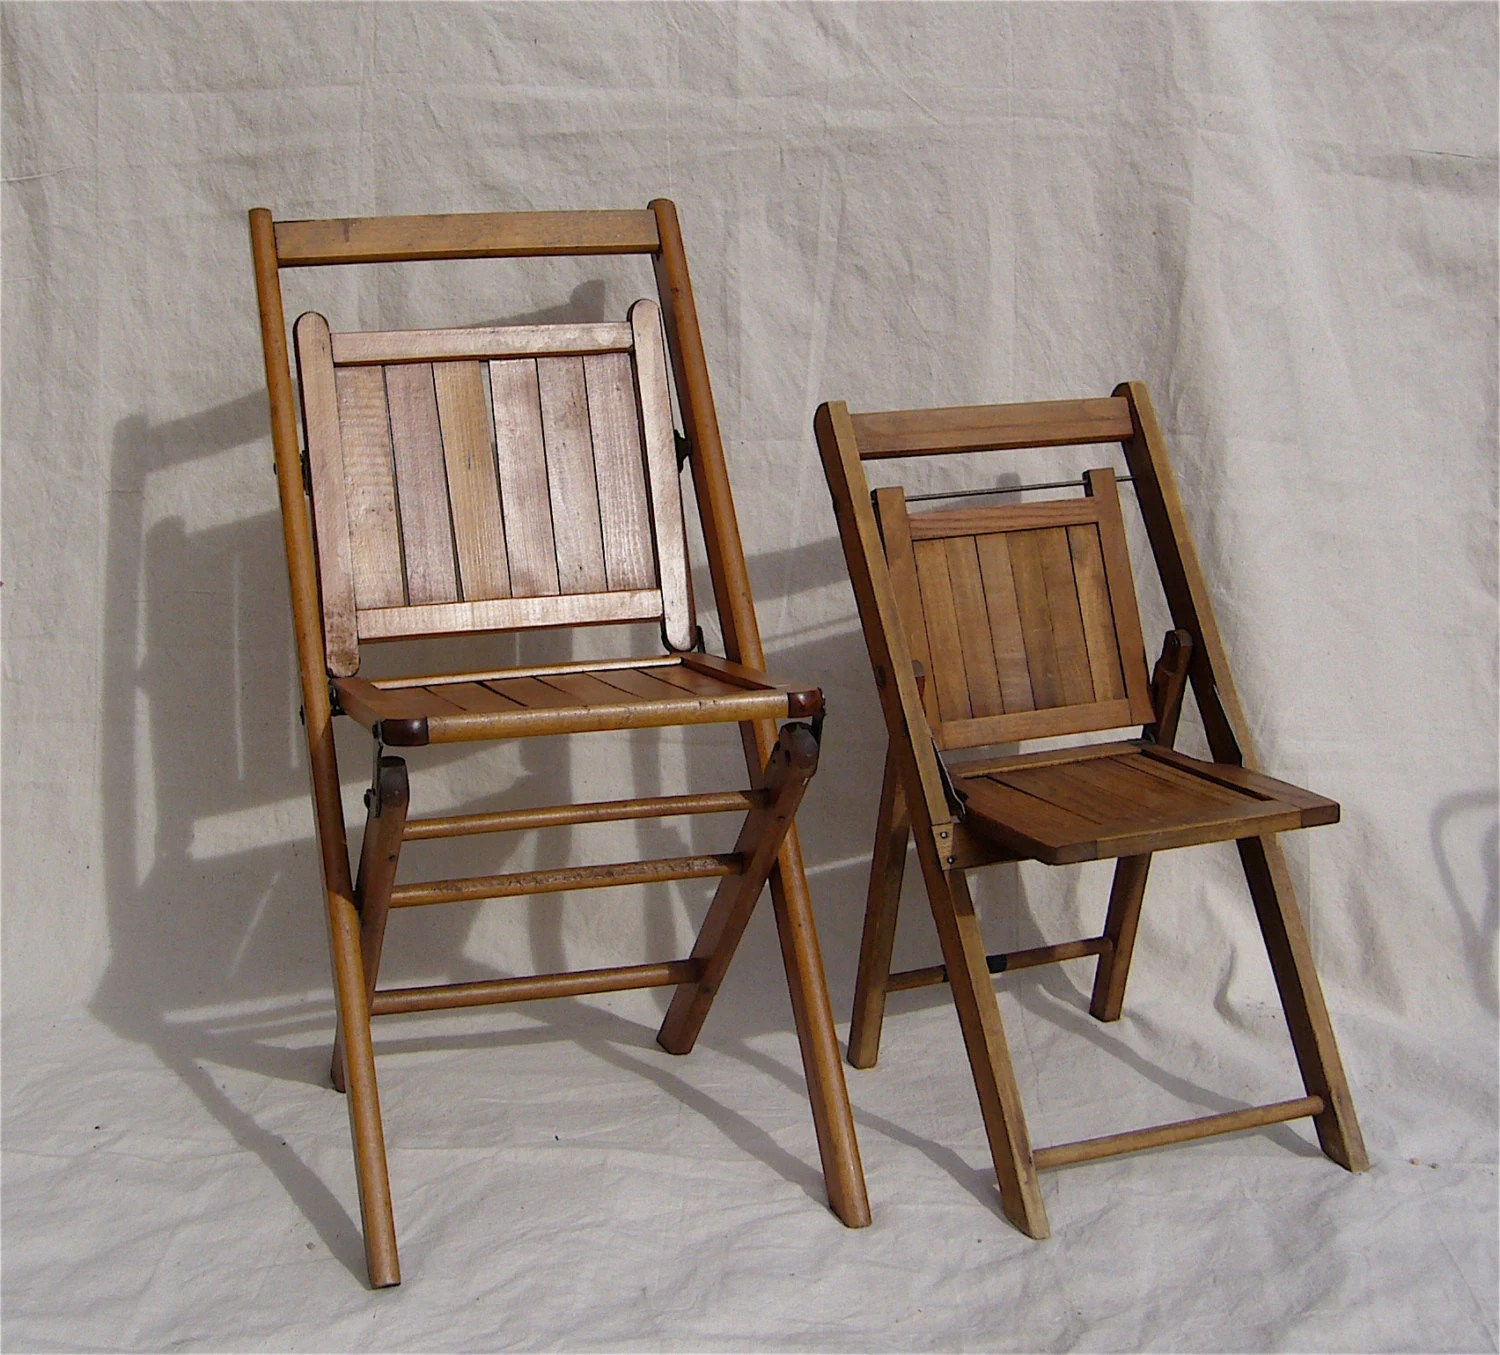 antique wooden chairs pictures chair covers in ireland folding wood slat pair adult and child sized c